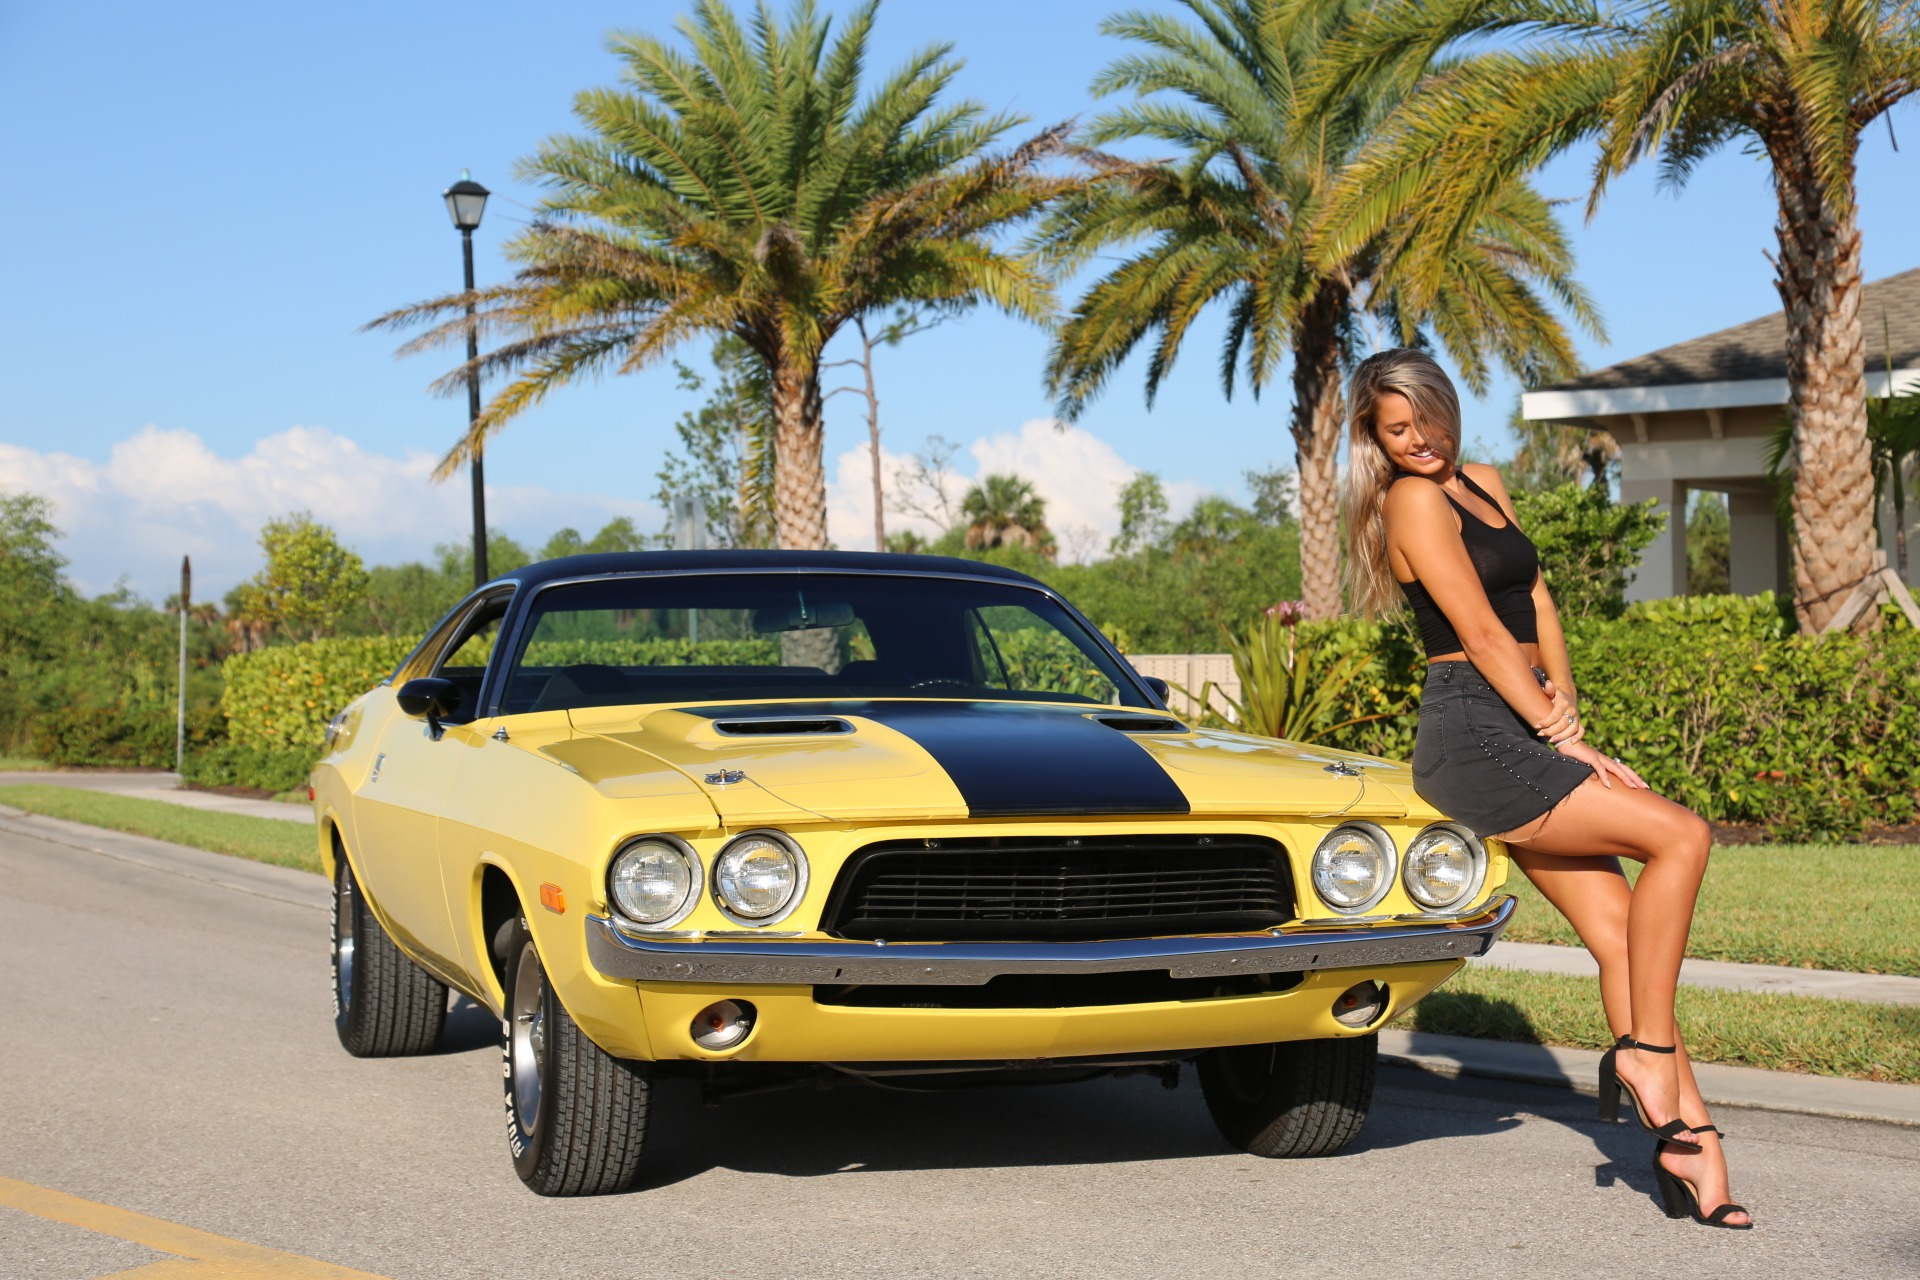 Used 1973 Dodge Challenger 440 V8 for sale Sold at Muscle Cars for Sale Inc. in Fort Myers FL 33912 3